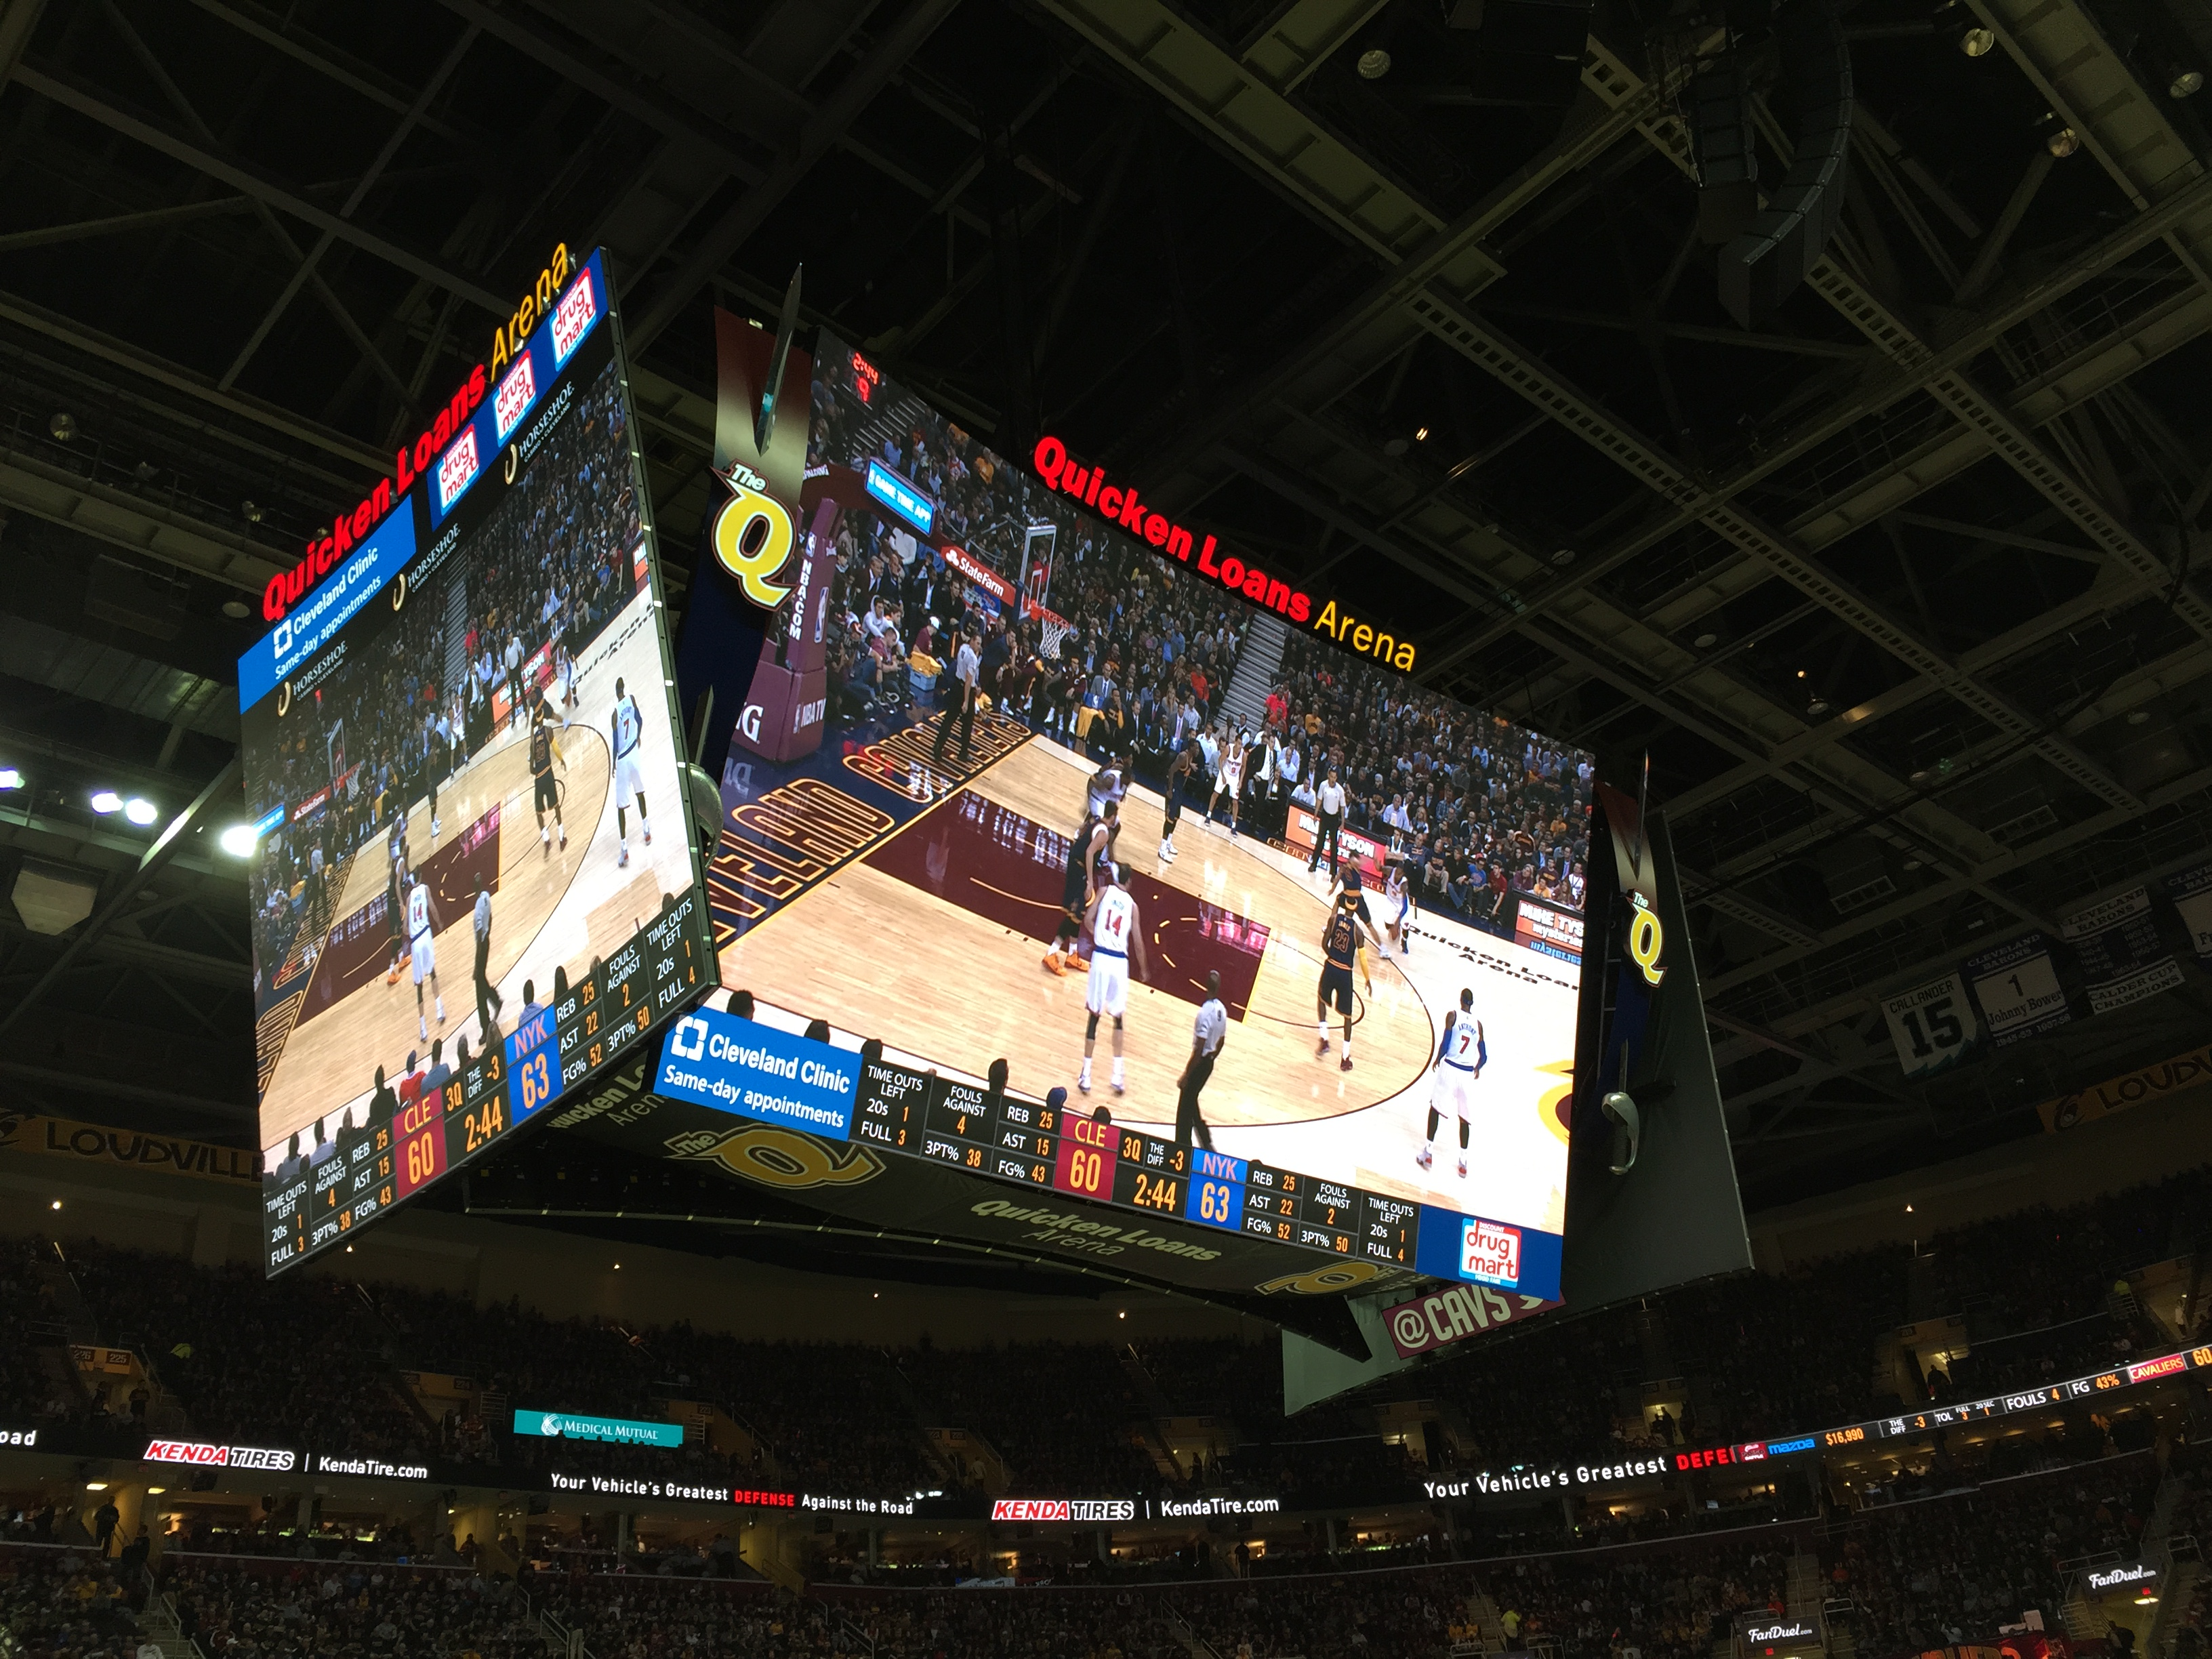 Cleveland Cavaliers Lead Videoboard Arms Race